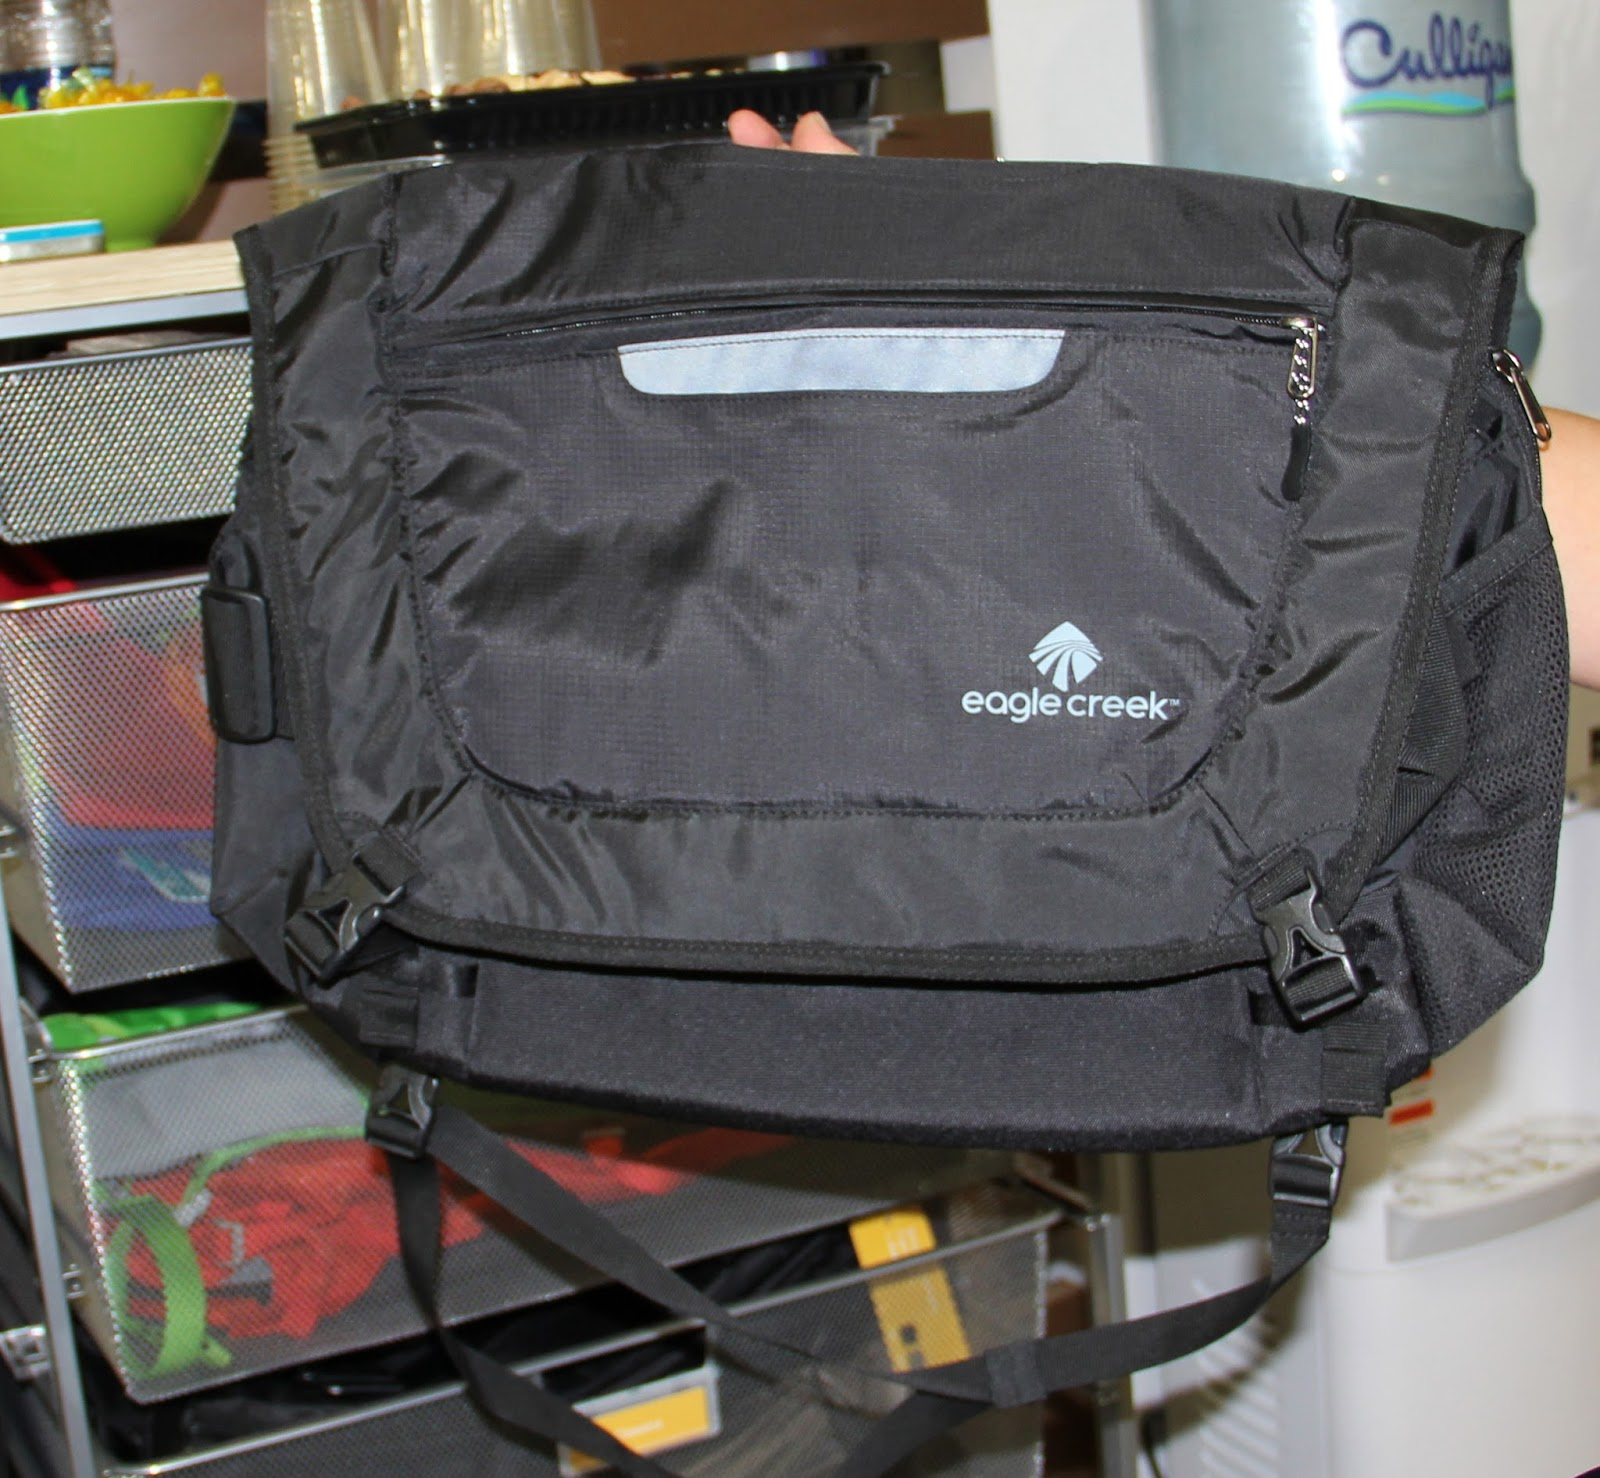 Messenger Bag Roomy Side Mesh Compartments For Water Bottles